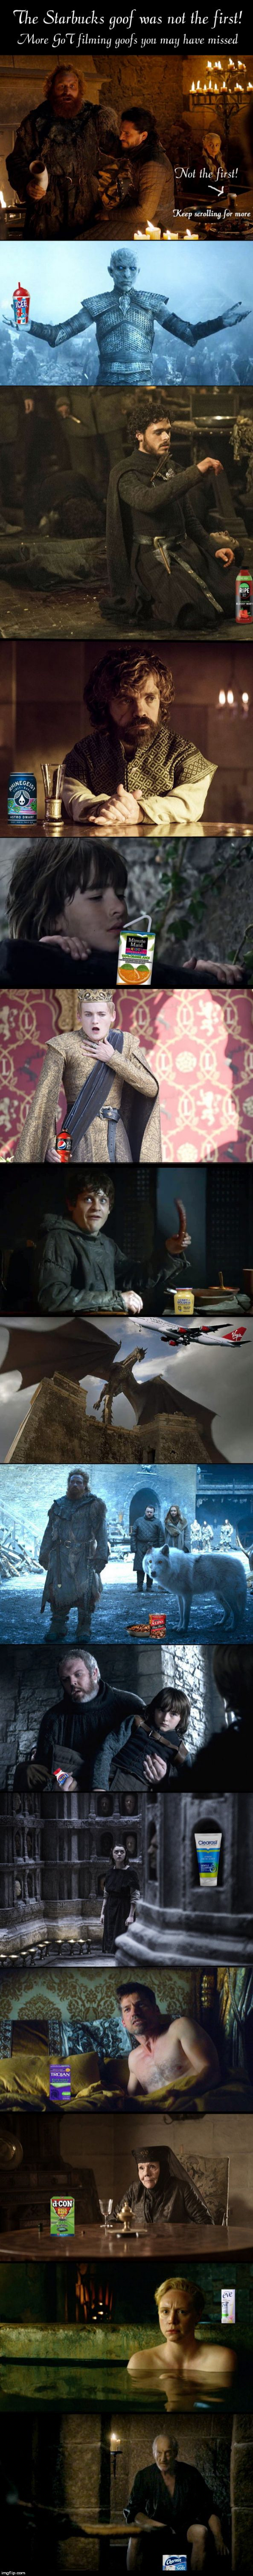 Beyond the Starbucks goof - GoT goofs you might have missed | image tagged in got filming goofs you might have missed,game of thrones,mistakes,humor,satire | made w/ Imgflip meme maker